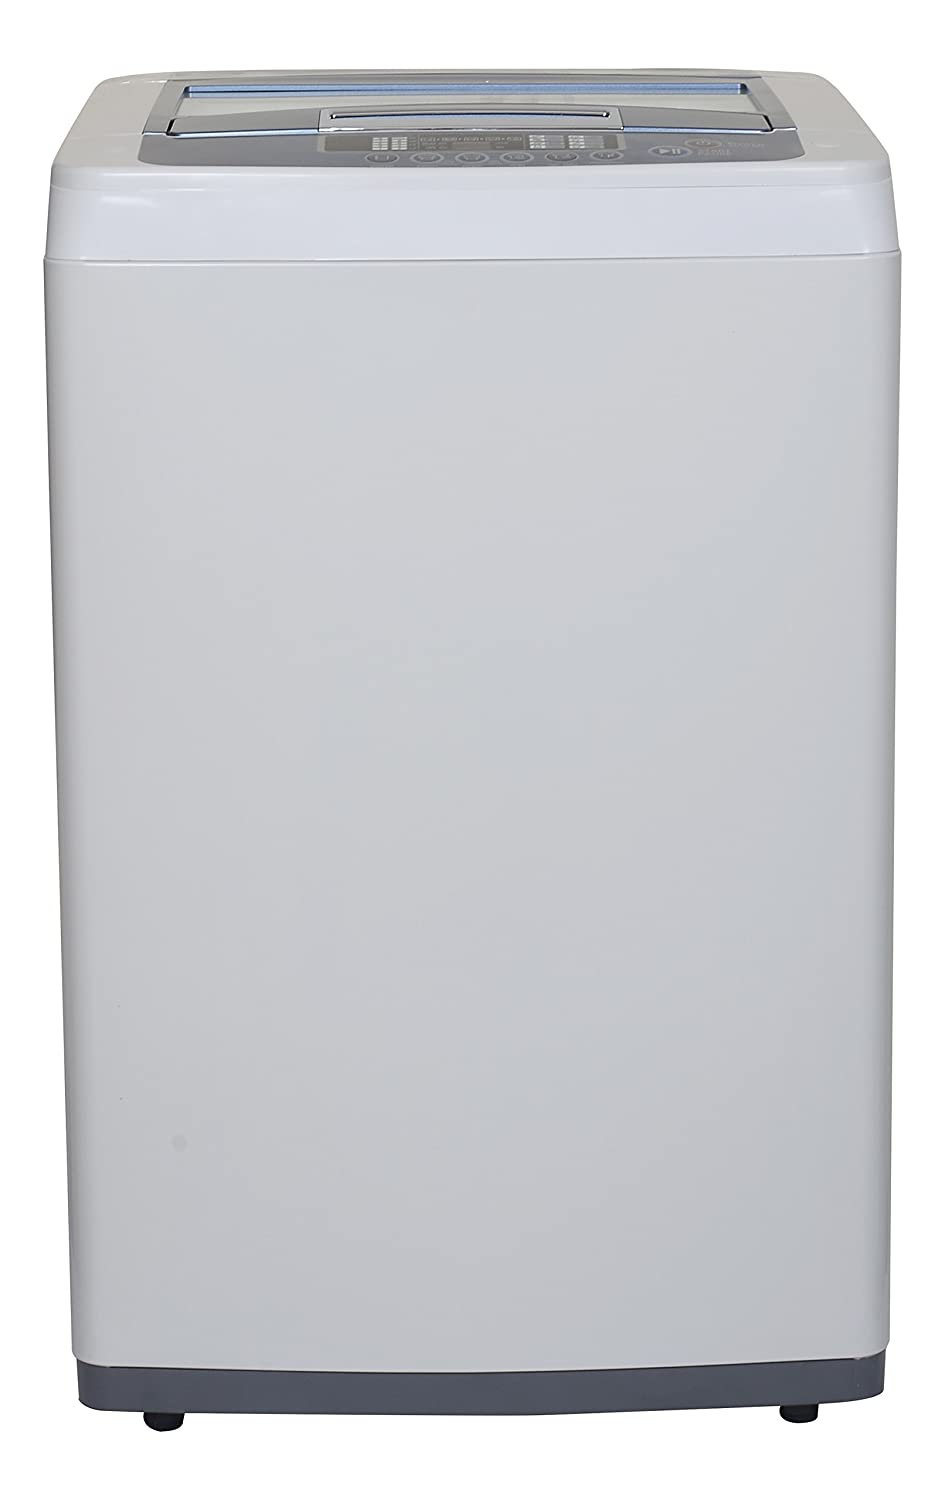 LG T72CMG22P Fully Automatic Top-loading Washing Machine (6.2 Kg, Marine Blue / Cool Grey) By Amazon @ Rs.14,490